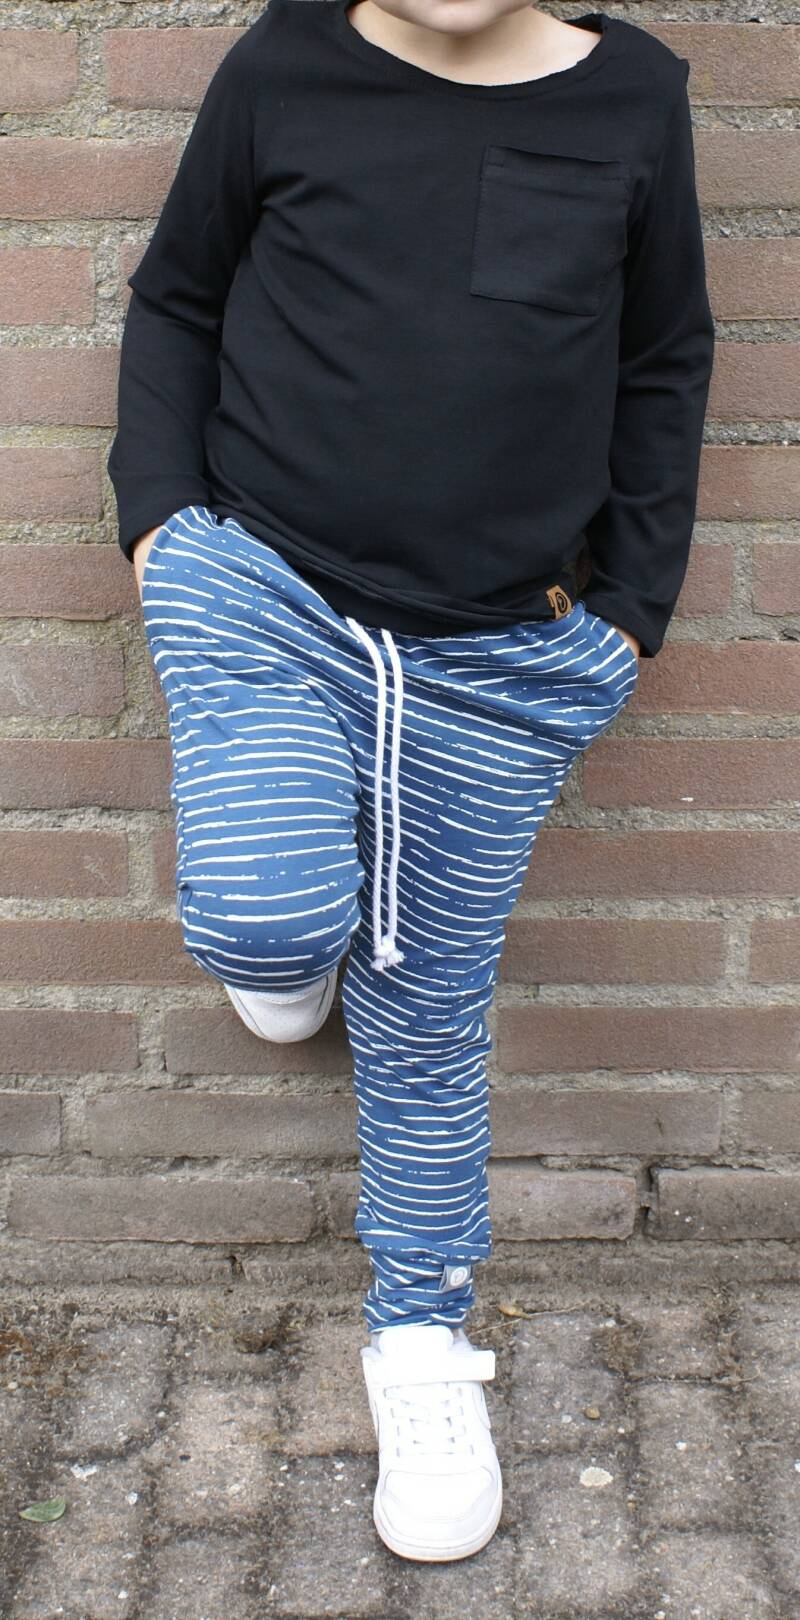 Joggers NOUT Streep blauw/wit